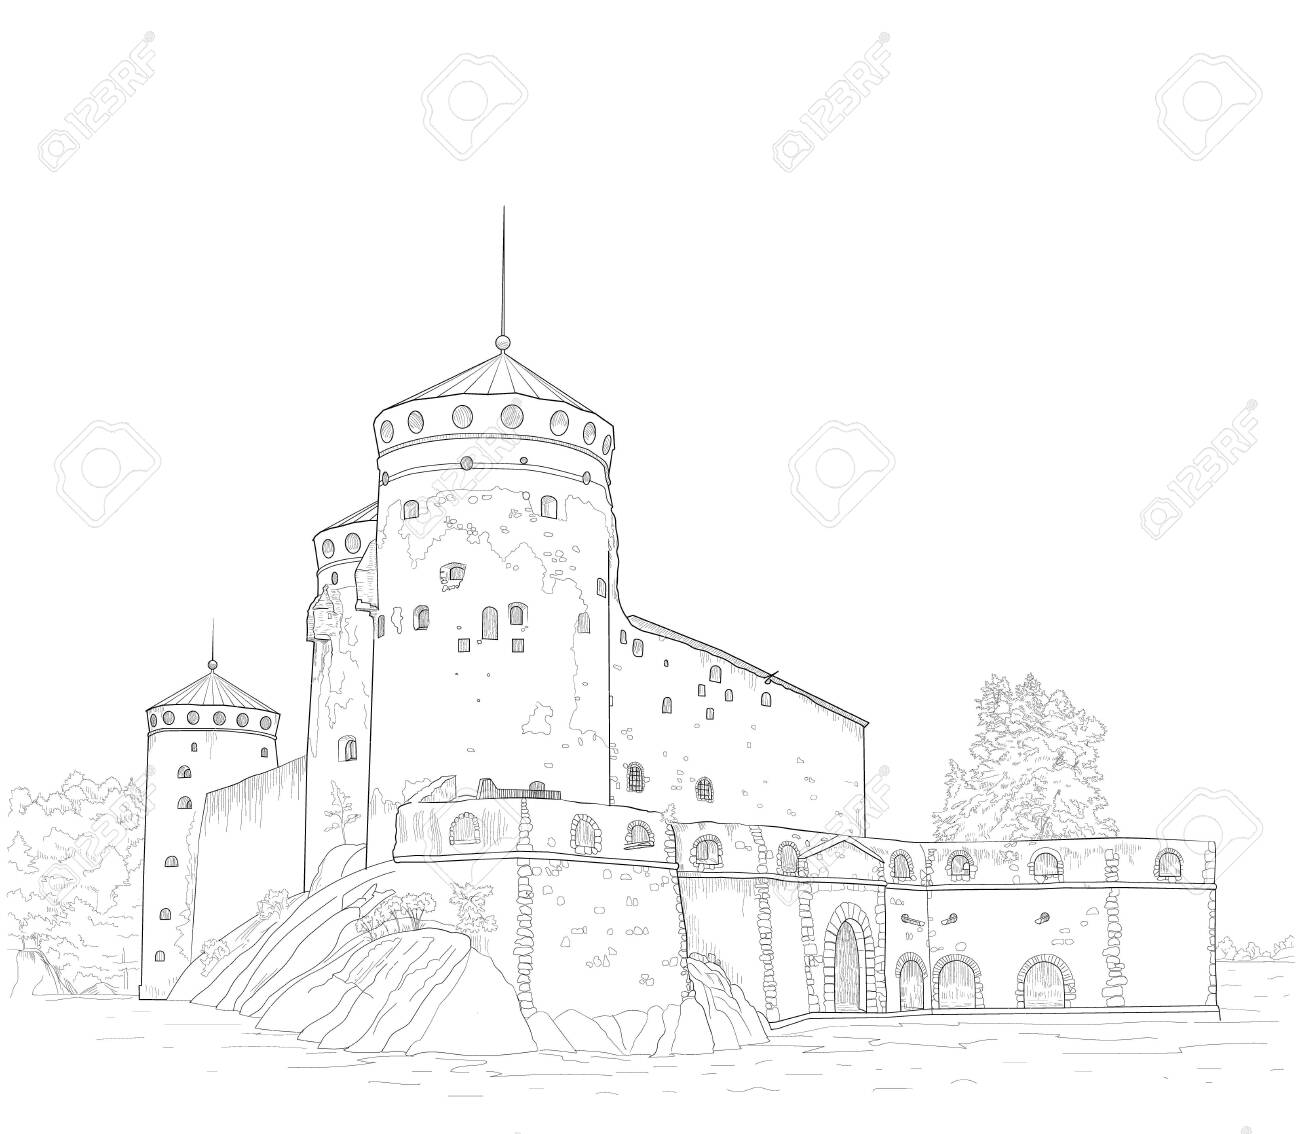 sketch of the medieval fortress of St. Olav in Finland - 141066137